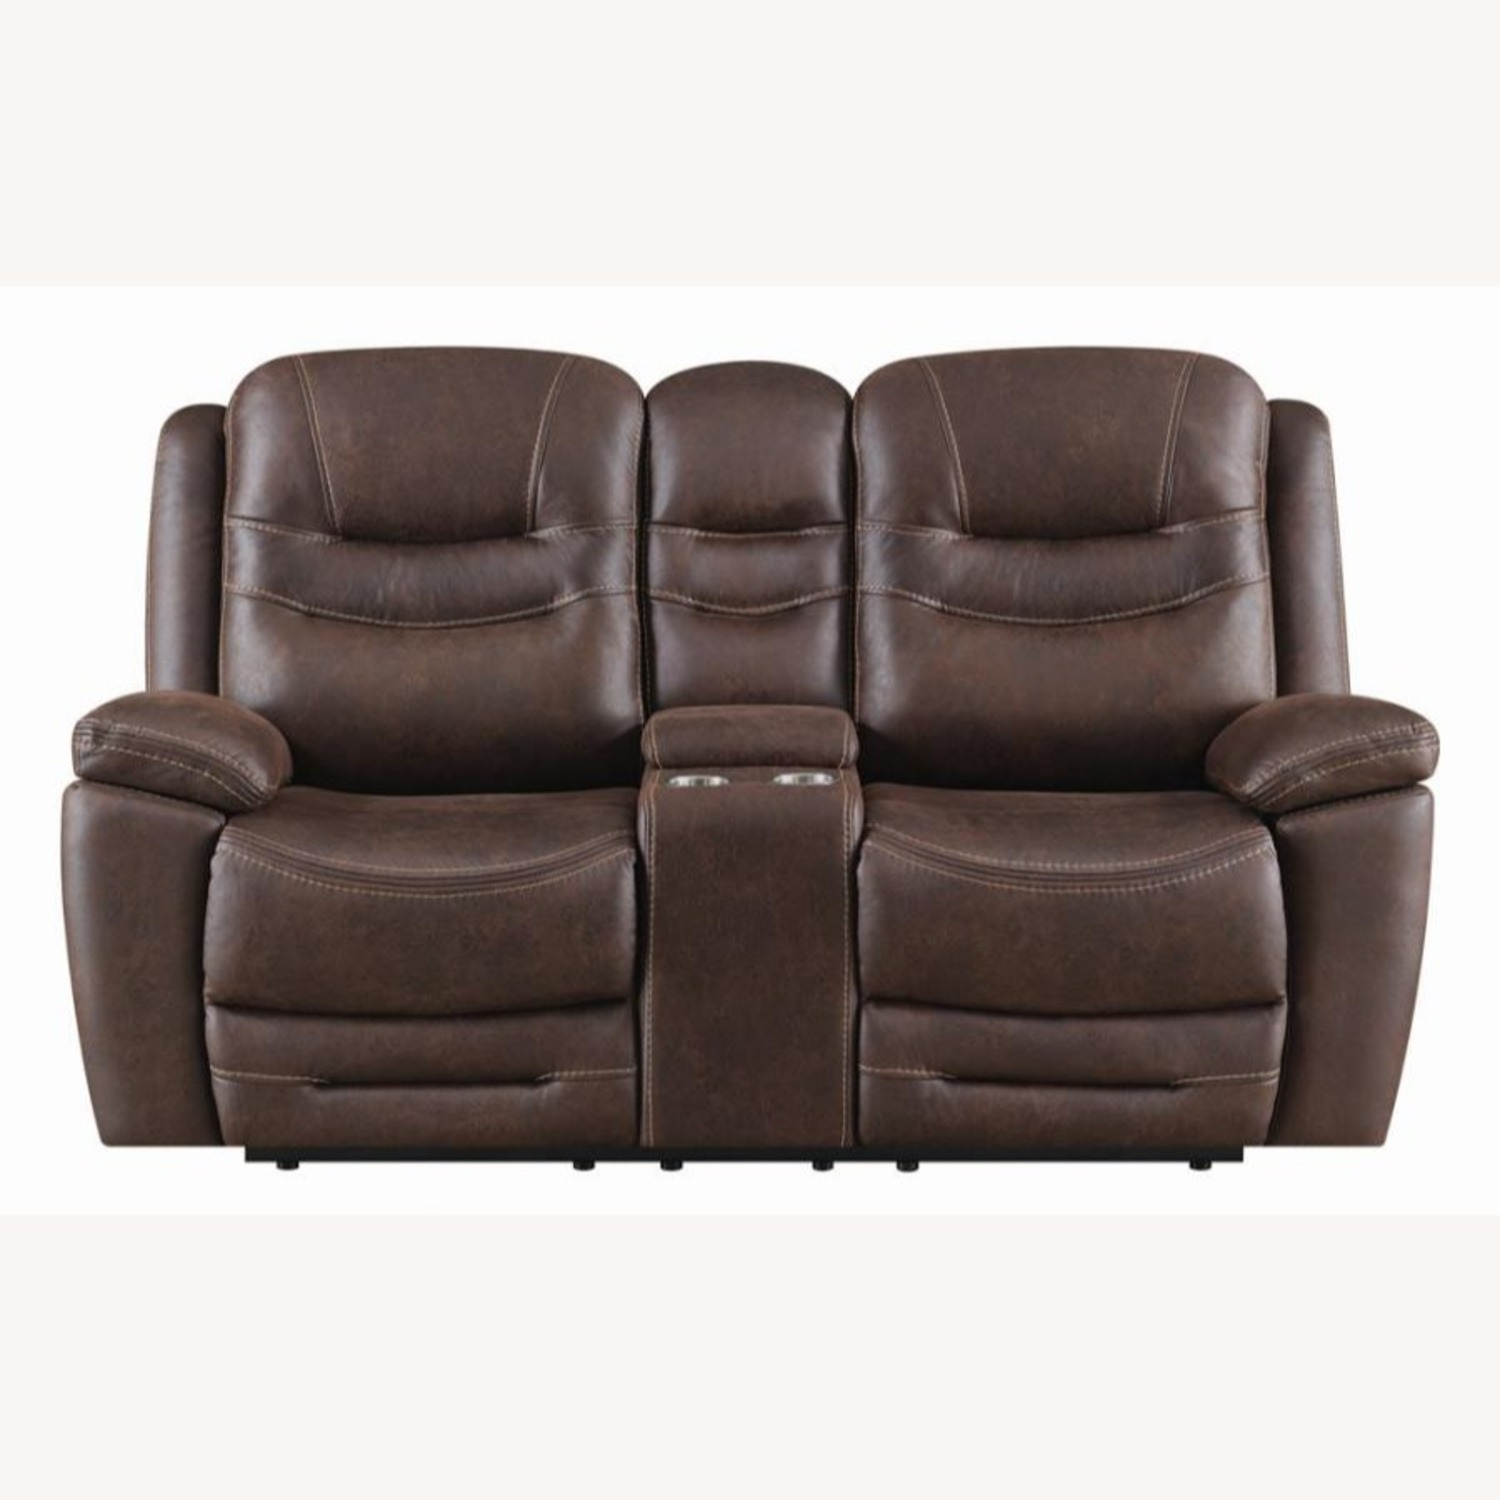 Power Loveseat Recliner In Chocolate Upholstery - image-2